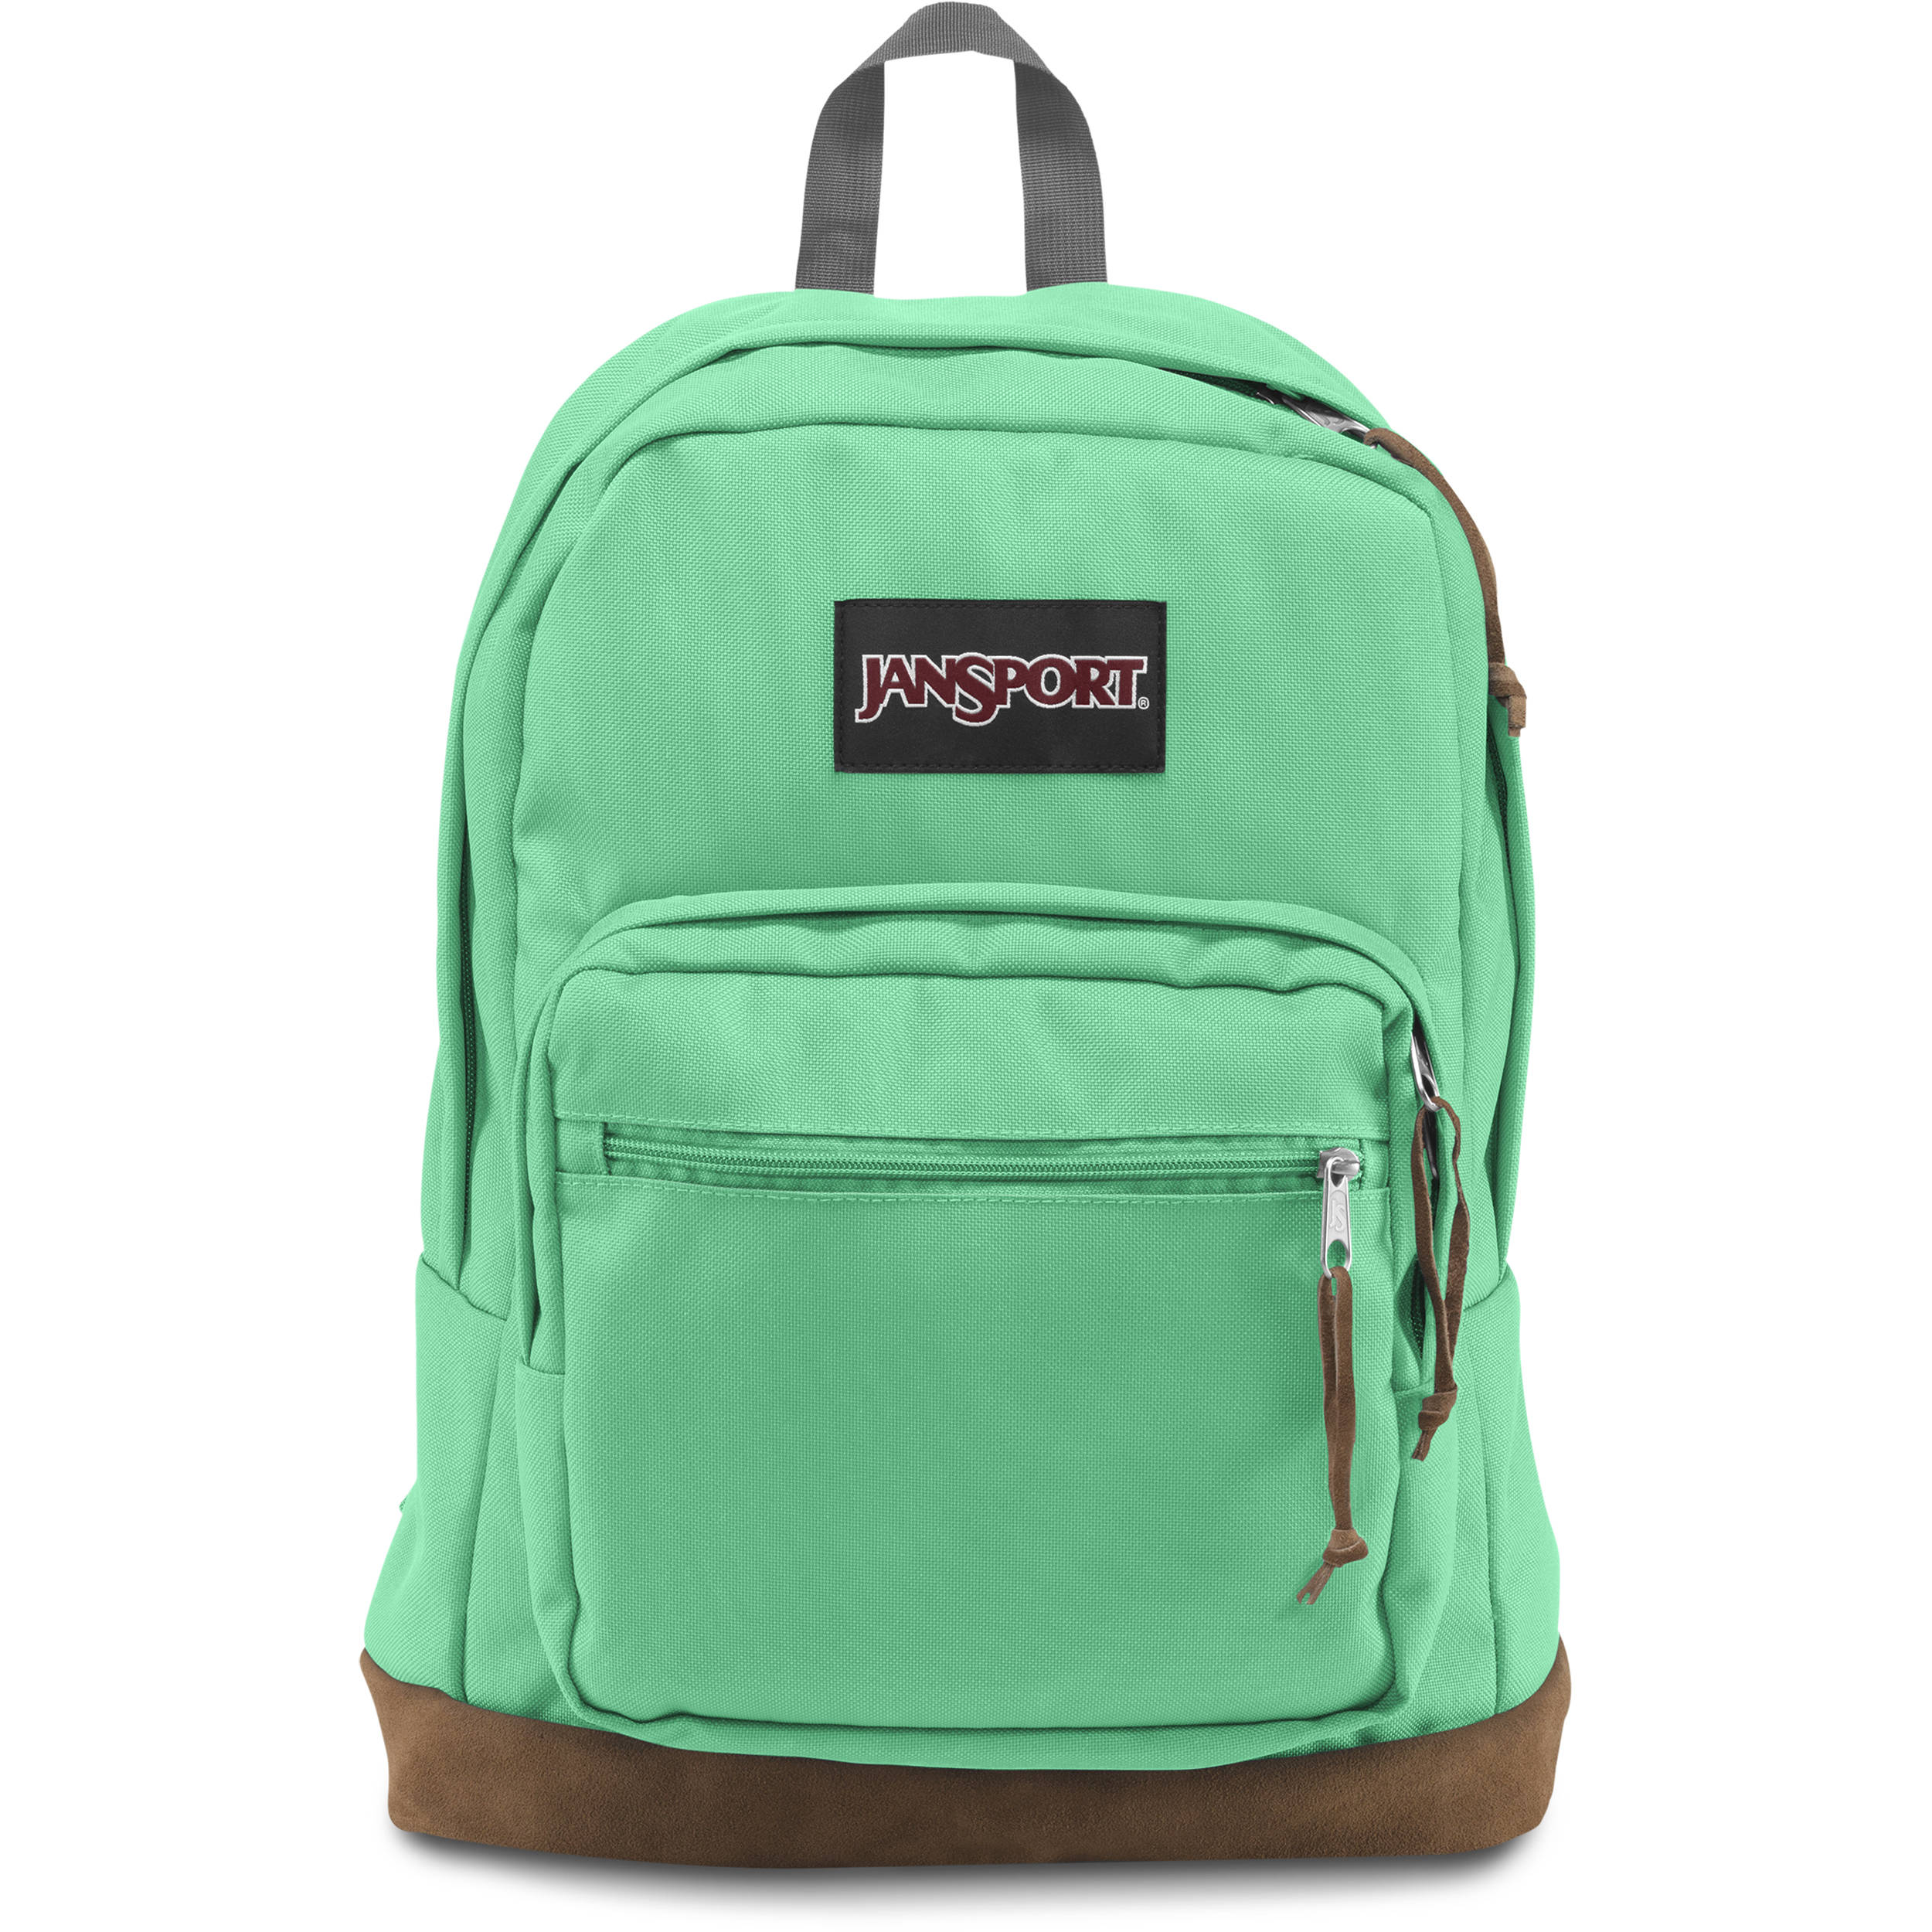 Jansport Green Backpack nNIMXolw